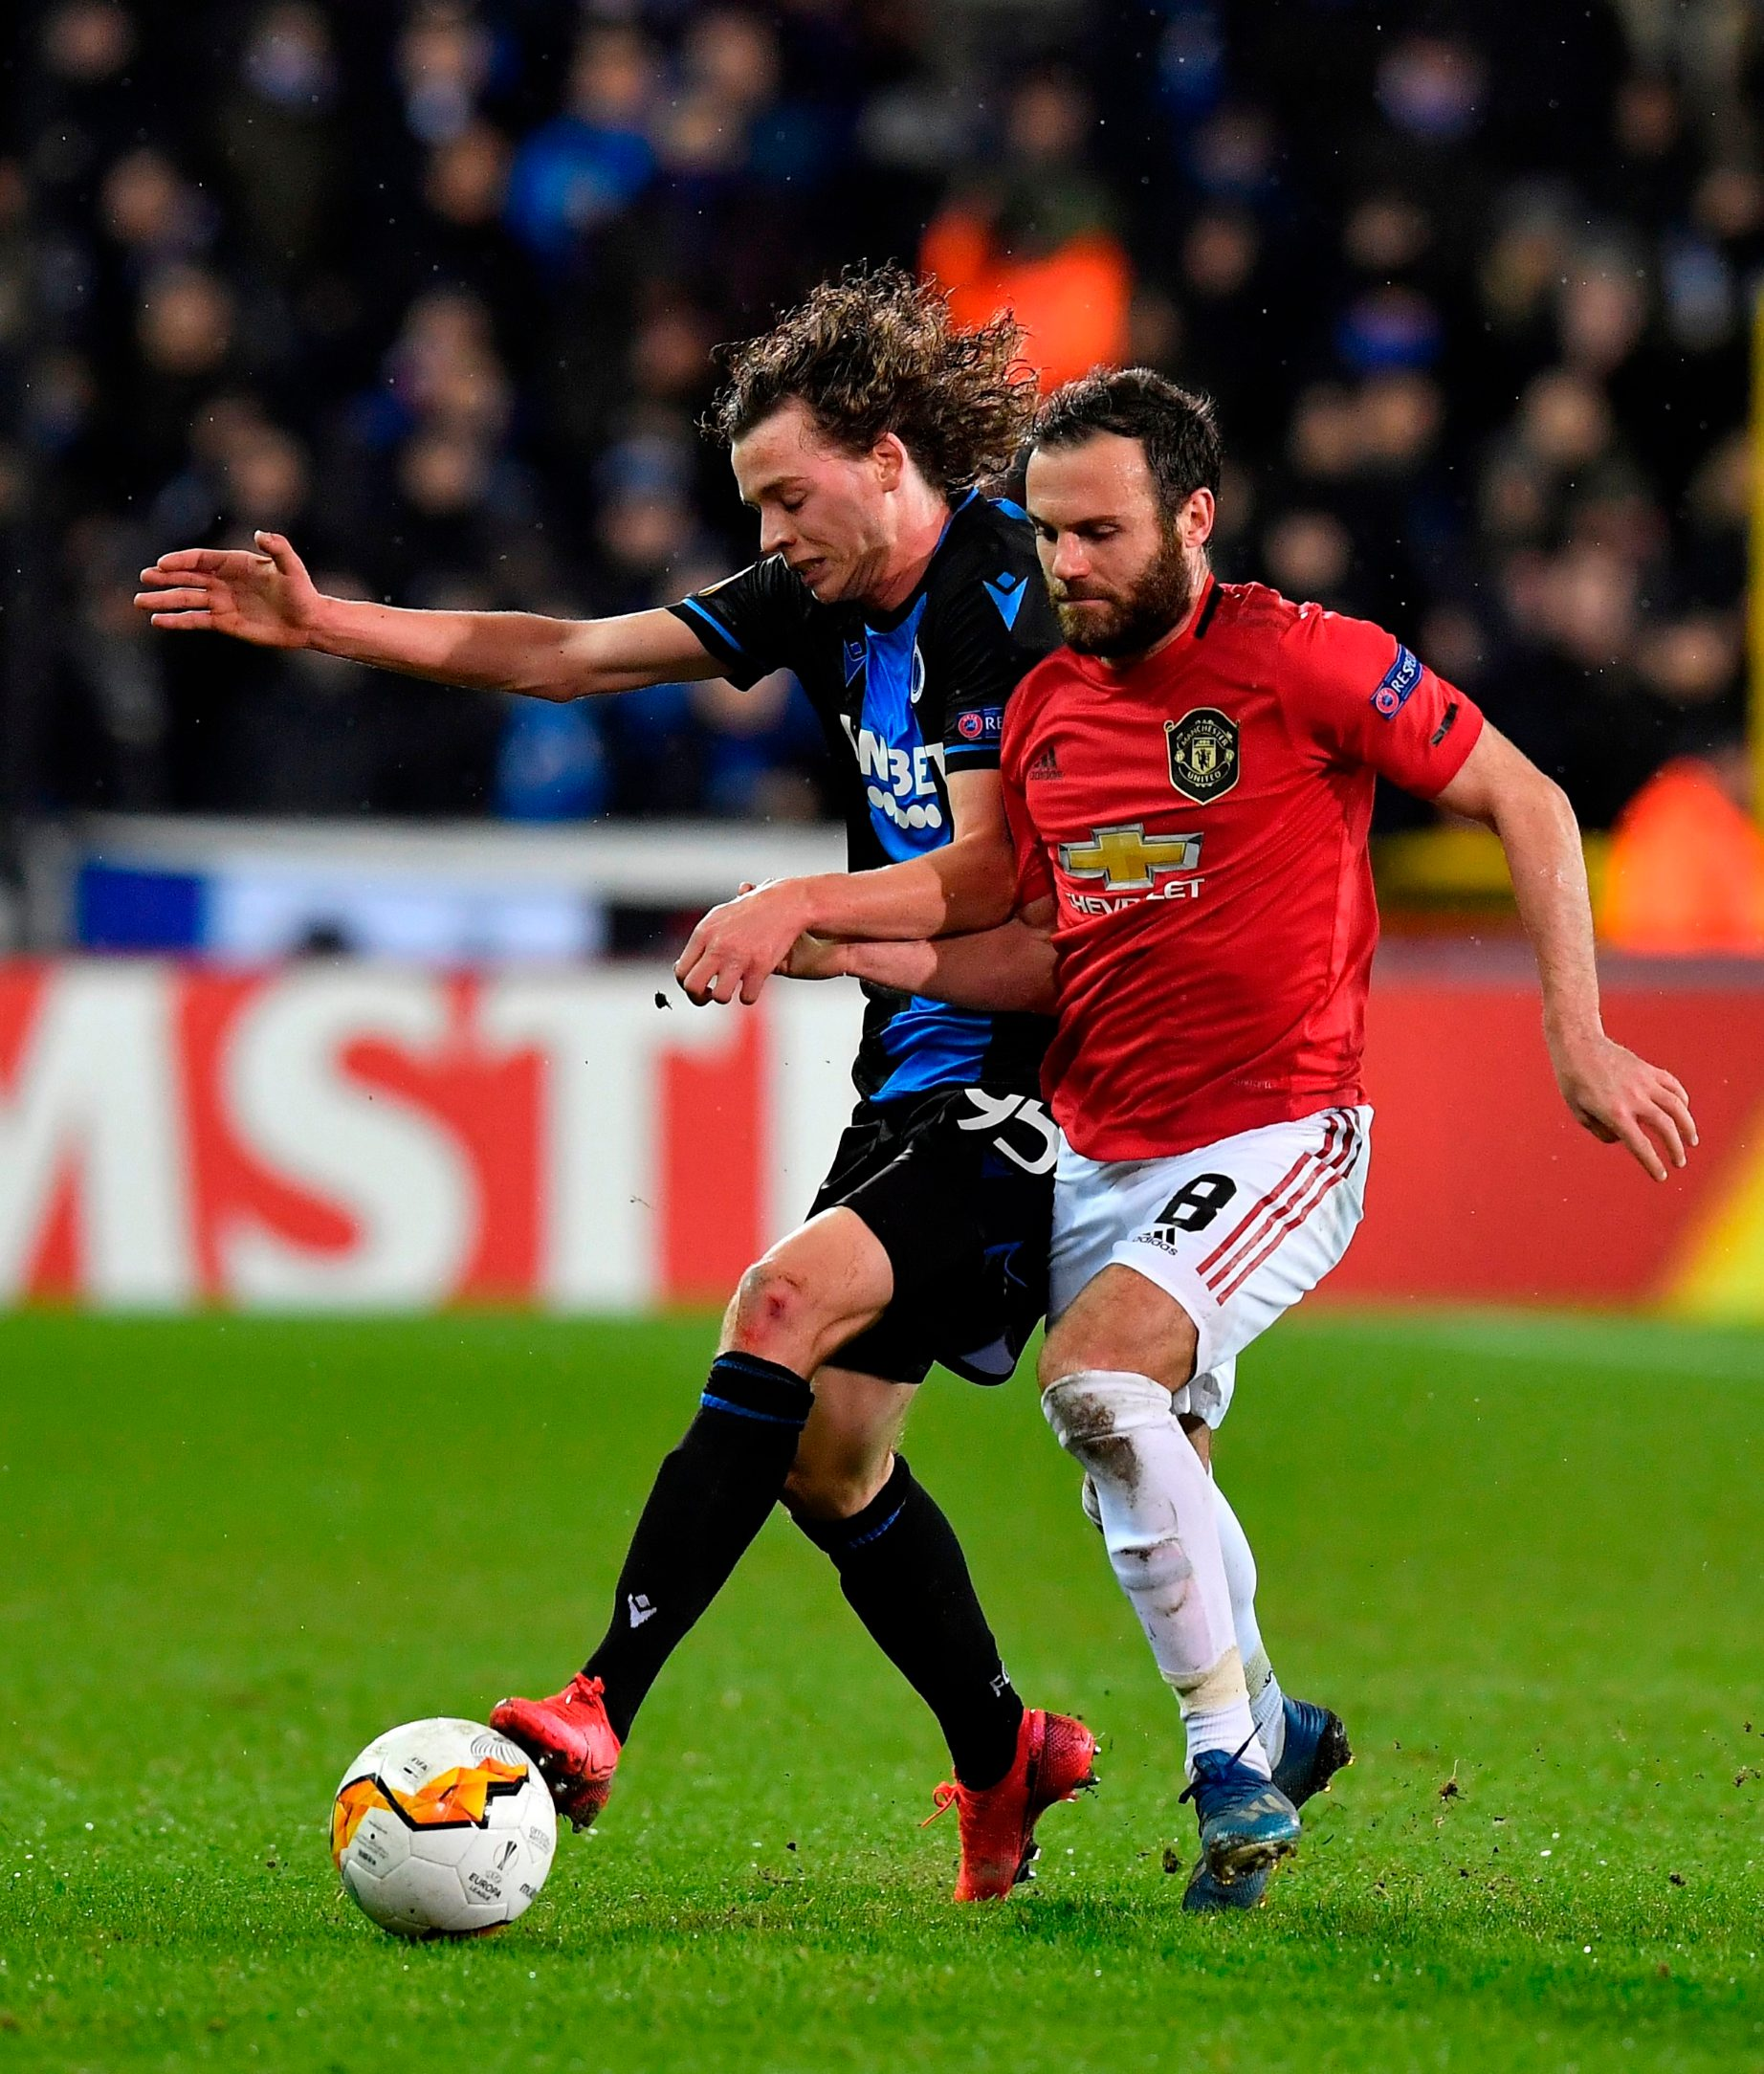 Club Brugge's Belgian forward Maxim De Cuyper (L) fights for the ball with Manchester United' s Spanish midfielder Juan Mata, during the Europa League match between Club Brugge and Manchester United at the Jan Breydel Stadium in Bruges on February 20, 2020. (Photo by JOHN THYS / AFP)